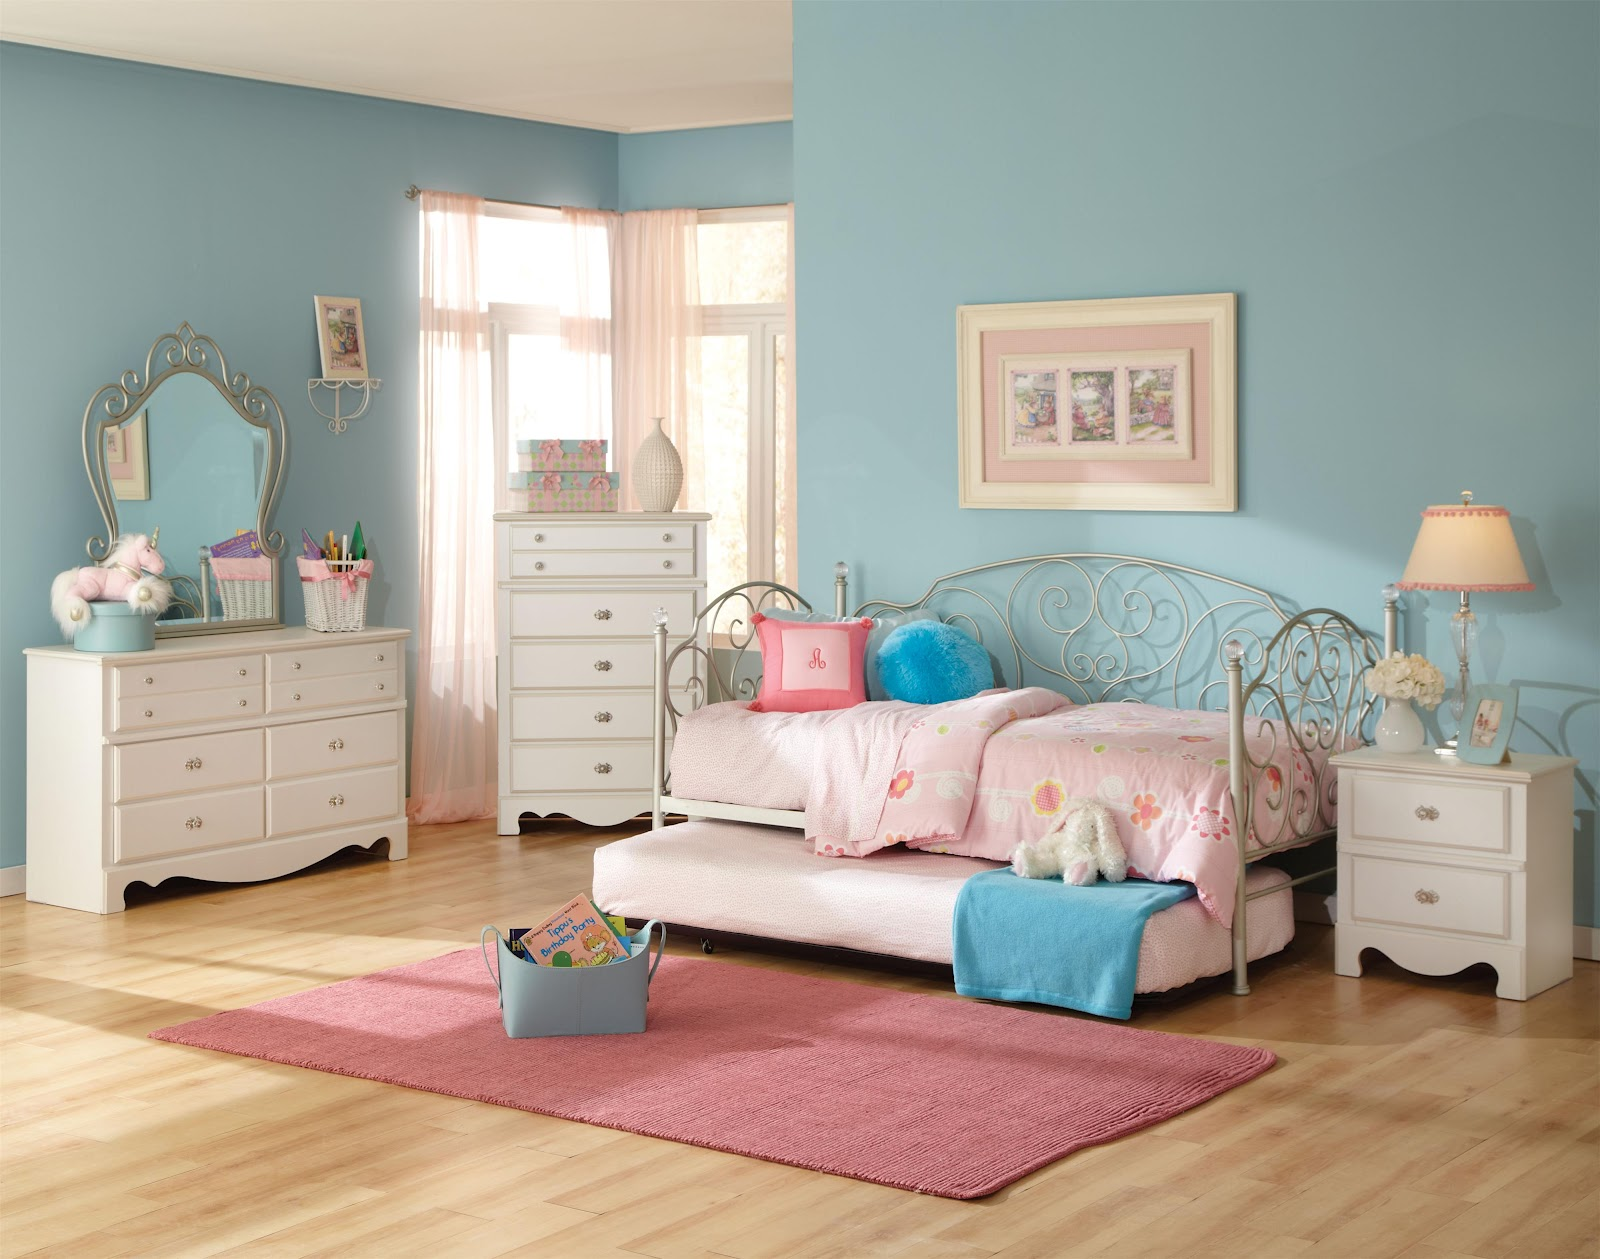 Knoxville wholesale furniture spring rose by standard for Bedroom furniture knoxville tn